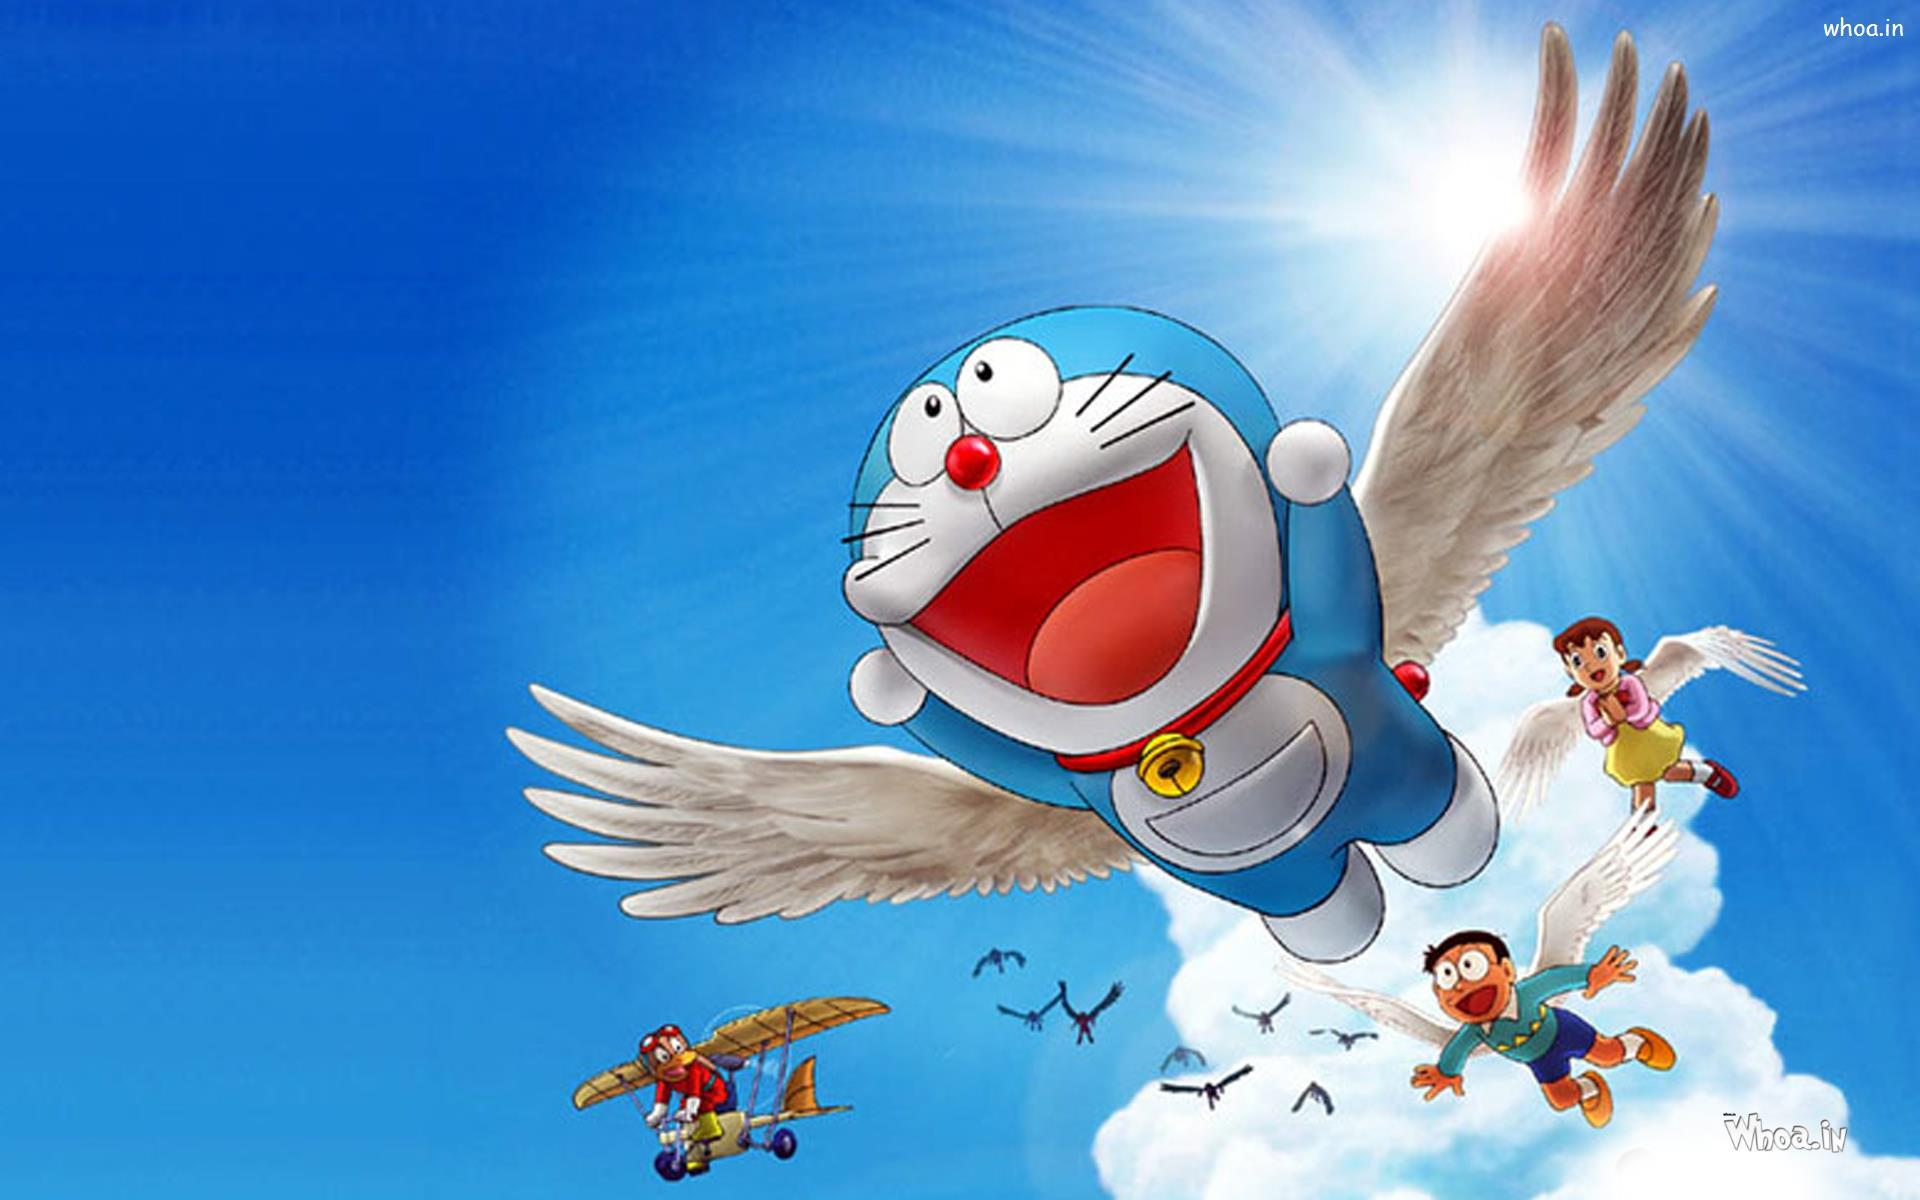 Doraemon and friends wallpapers 2015 wallpaper cave doraemon cartoon images and wallpapers full hd images voltagebd